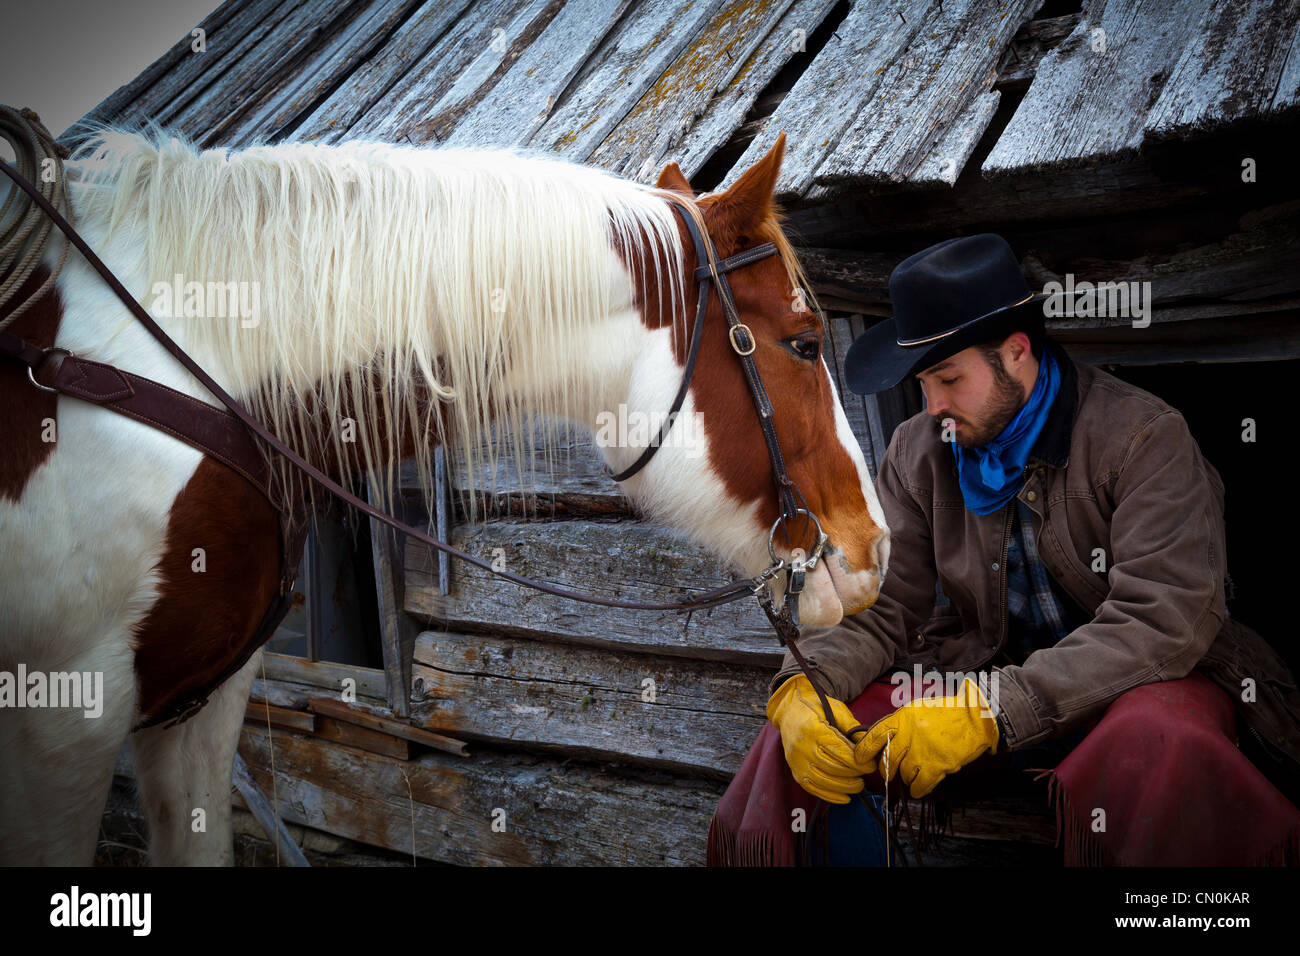 A cowboy and his horse on a ranch in northeastern Wyoming Stock Photo